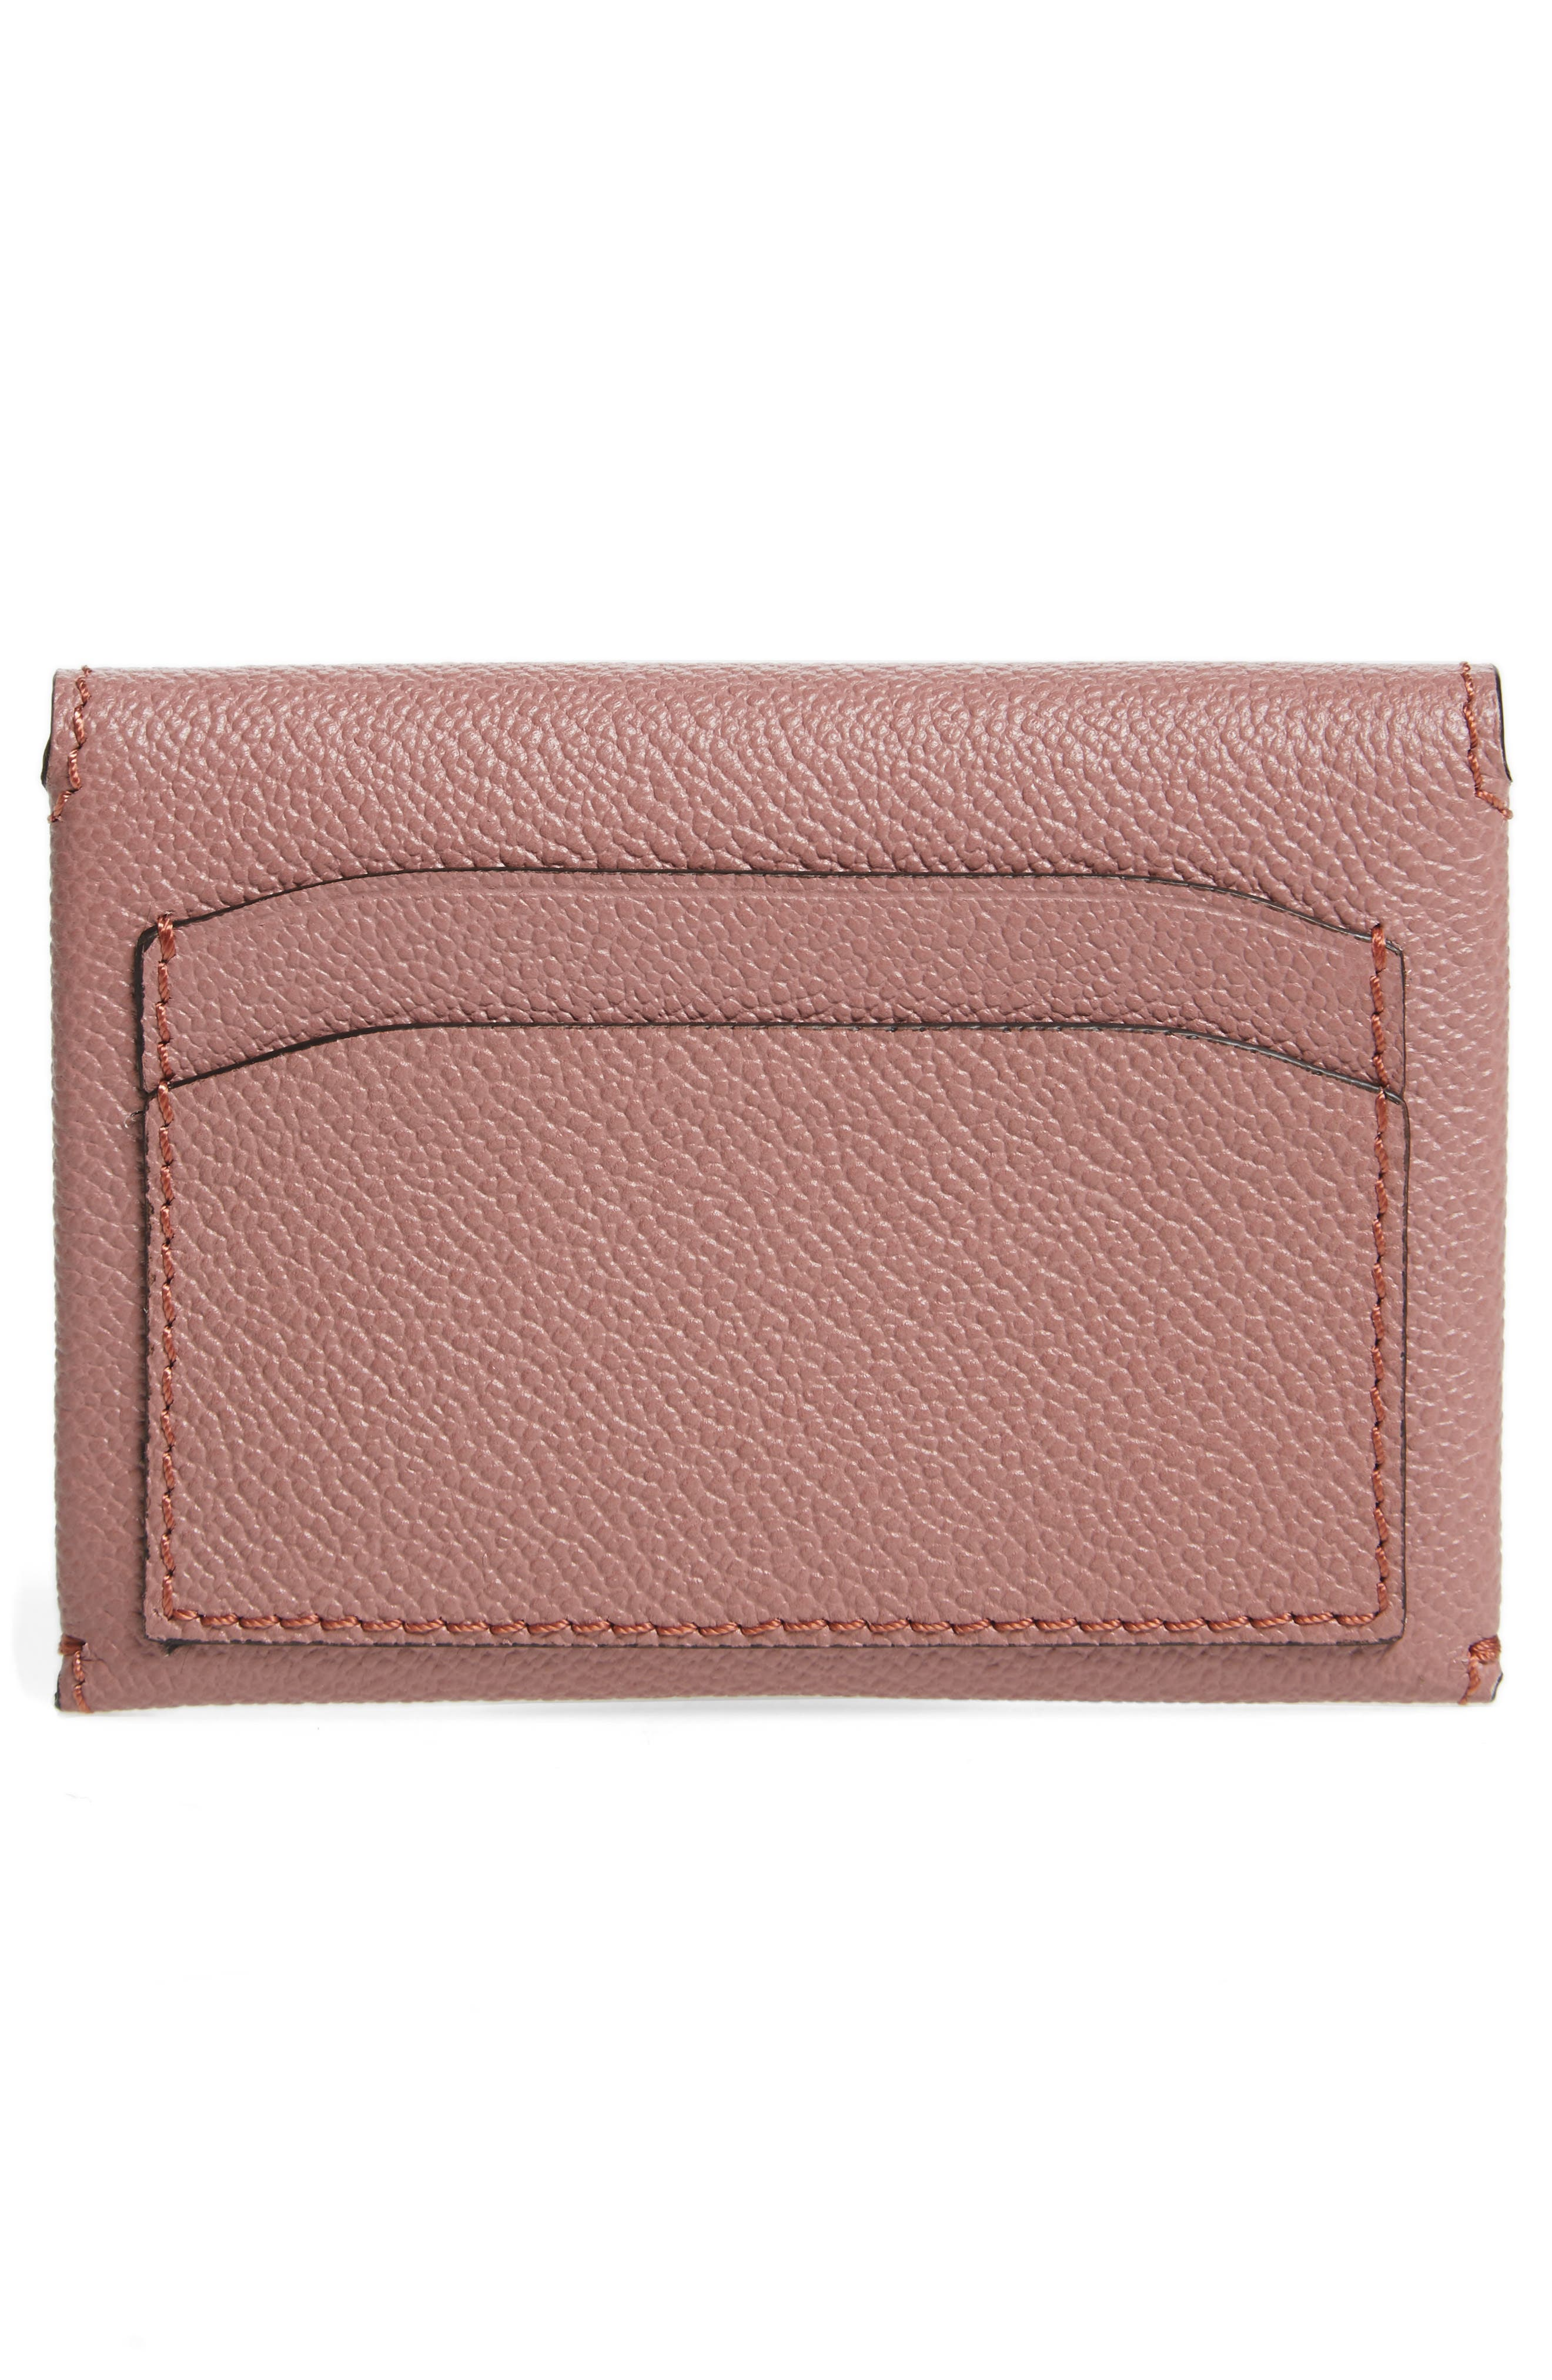 Mayfield Leather Card Case,                             Alternate thumbnail 3, color,                             Dusty Pink / Multi